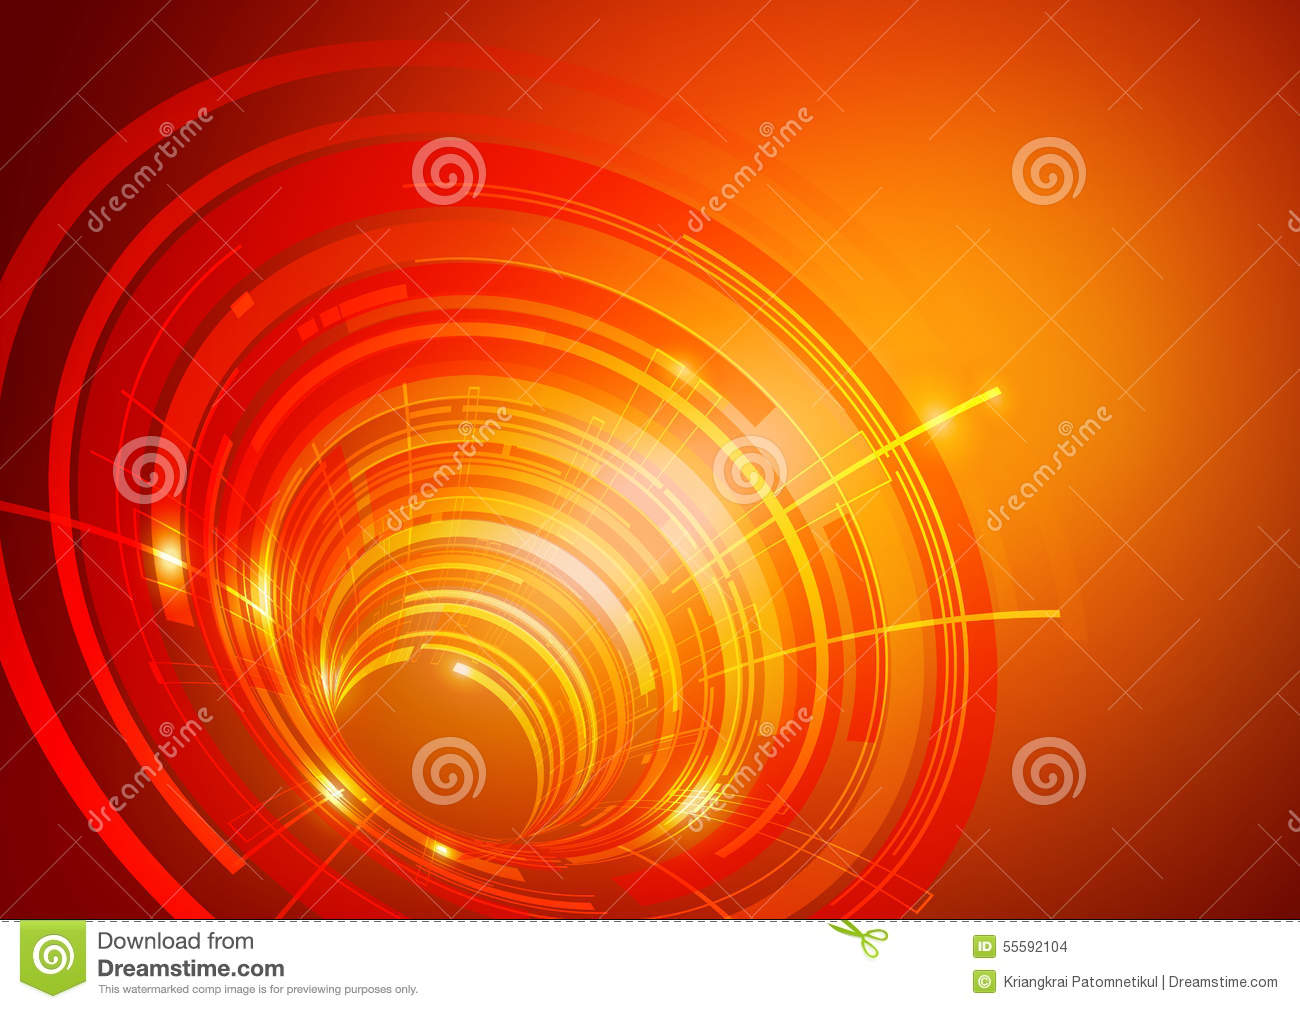 Technology Abstract Background Stock Illustration: Abstract Circles Technology Orange Background Stock Vector